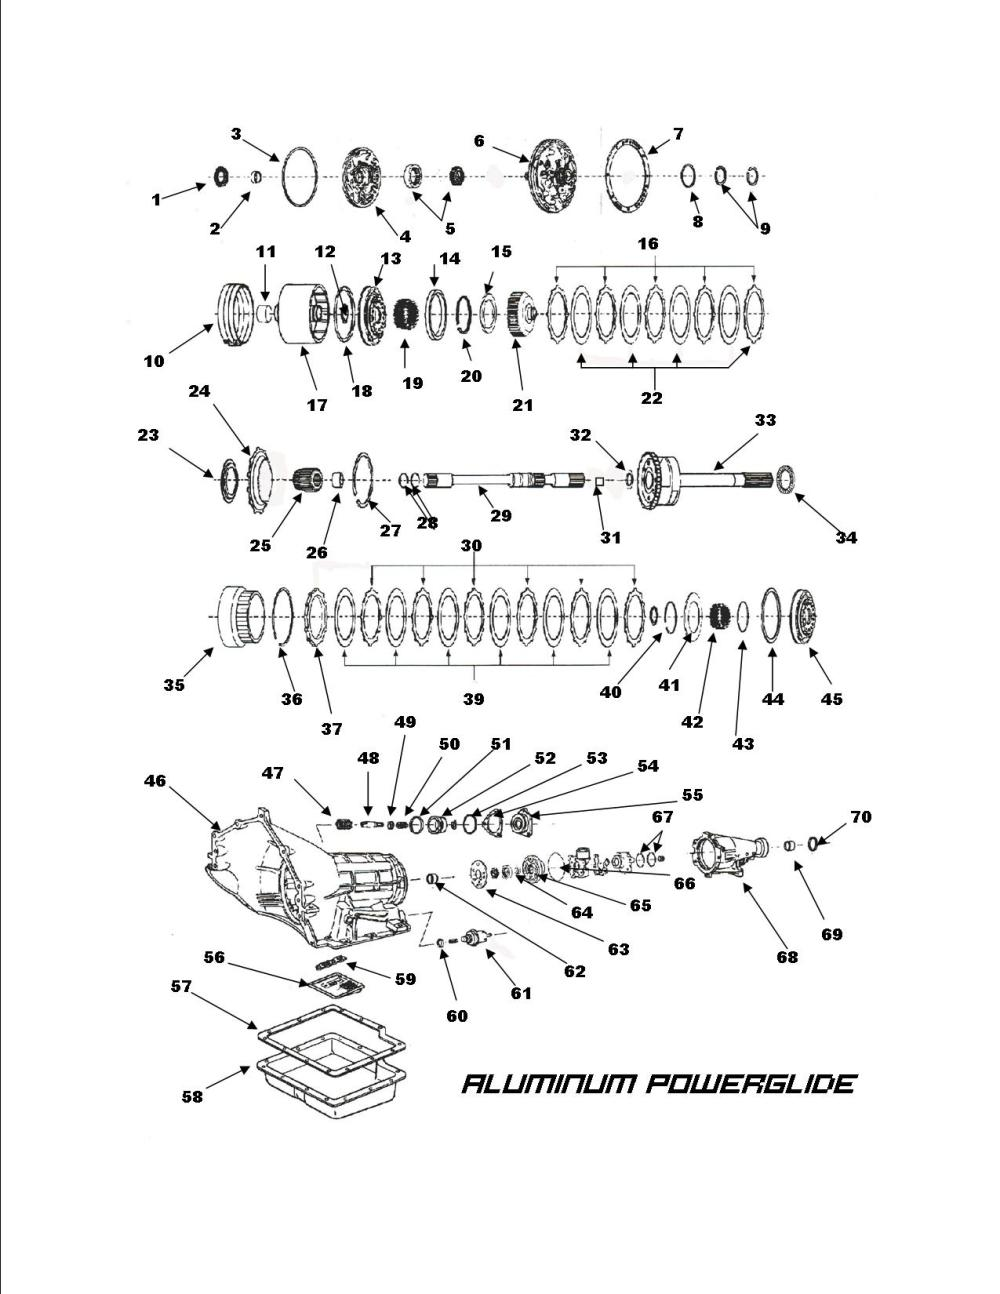 medium resolution of power glide transmission exploded view